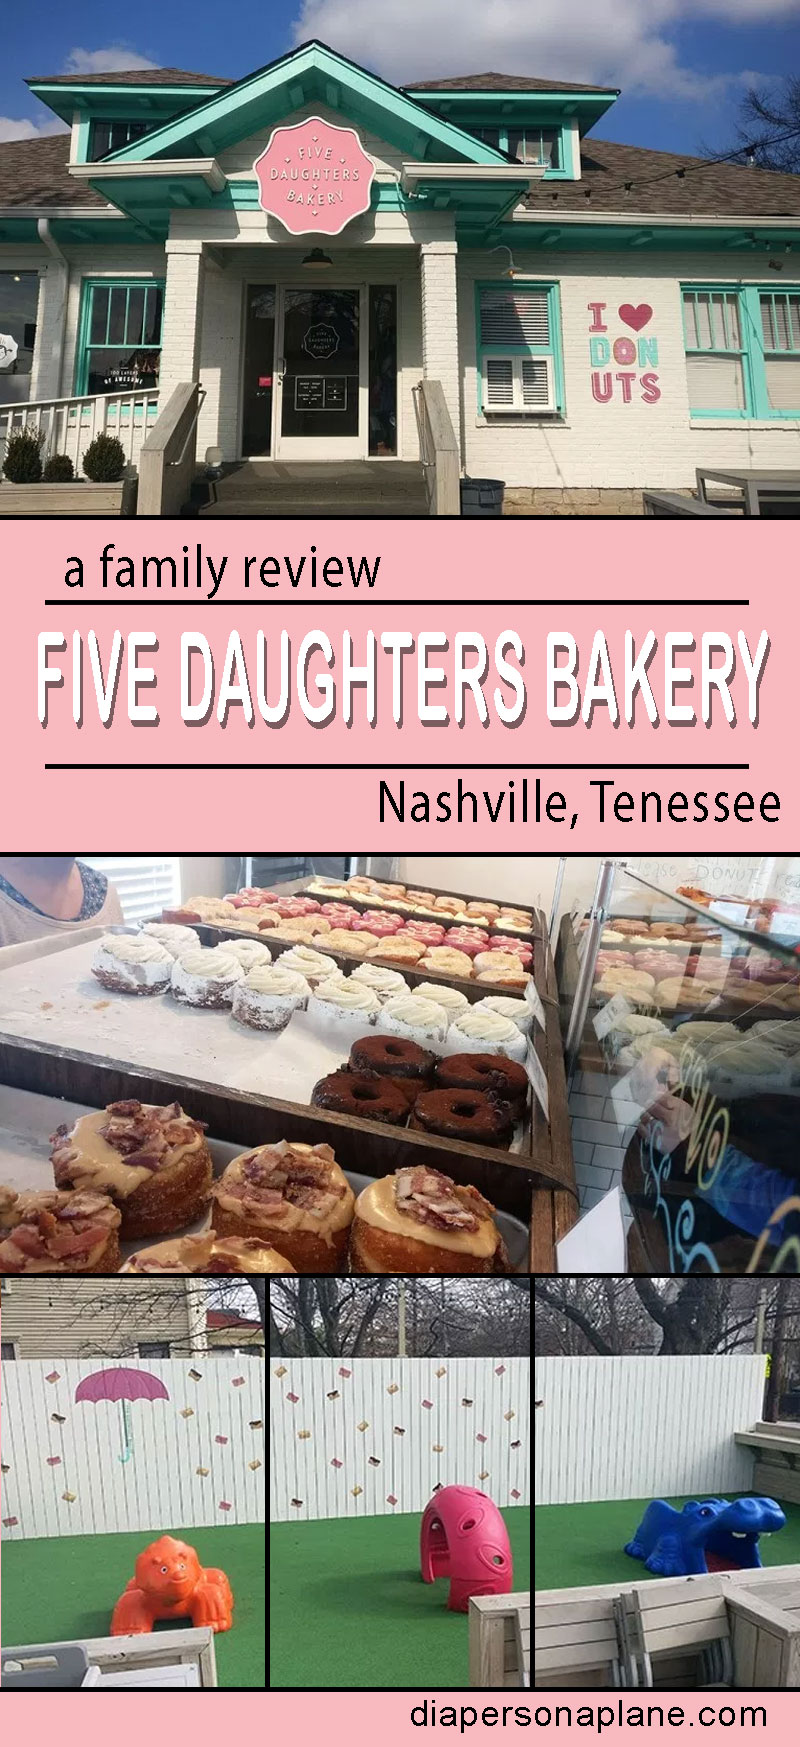 Five Daughters Bakery, Nashville, Tennessee, Cronuts, Doughnuts, 100 Layers, Organic, GMO Free, Bakery, diapersonaplane, diapers on a plane, creating family memories, traveling with kids, family travel